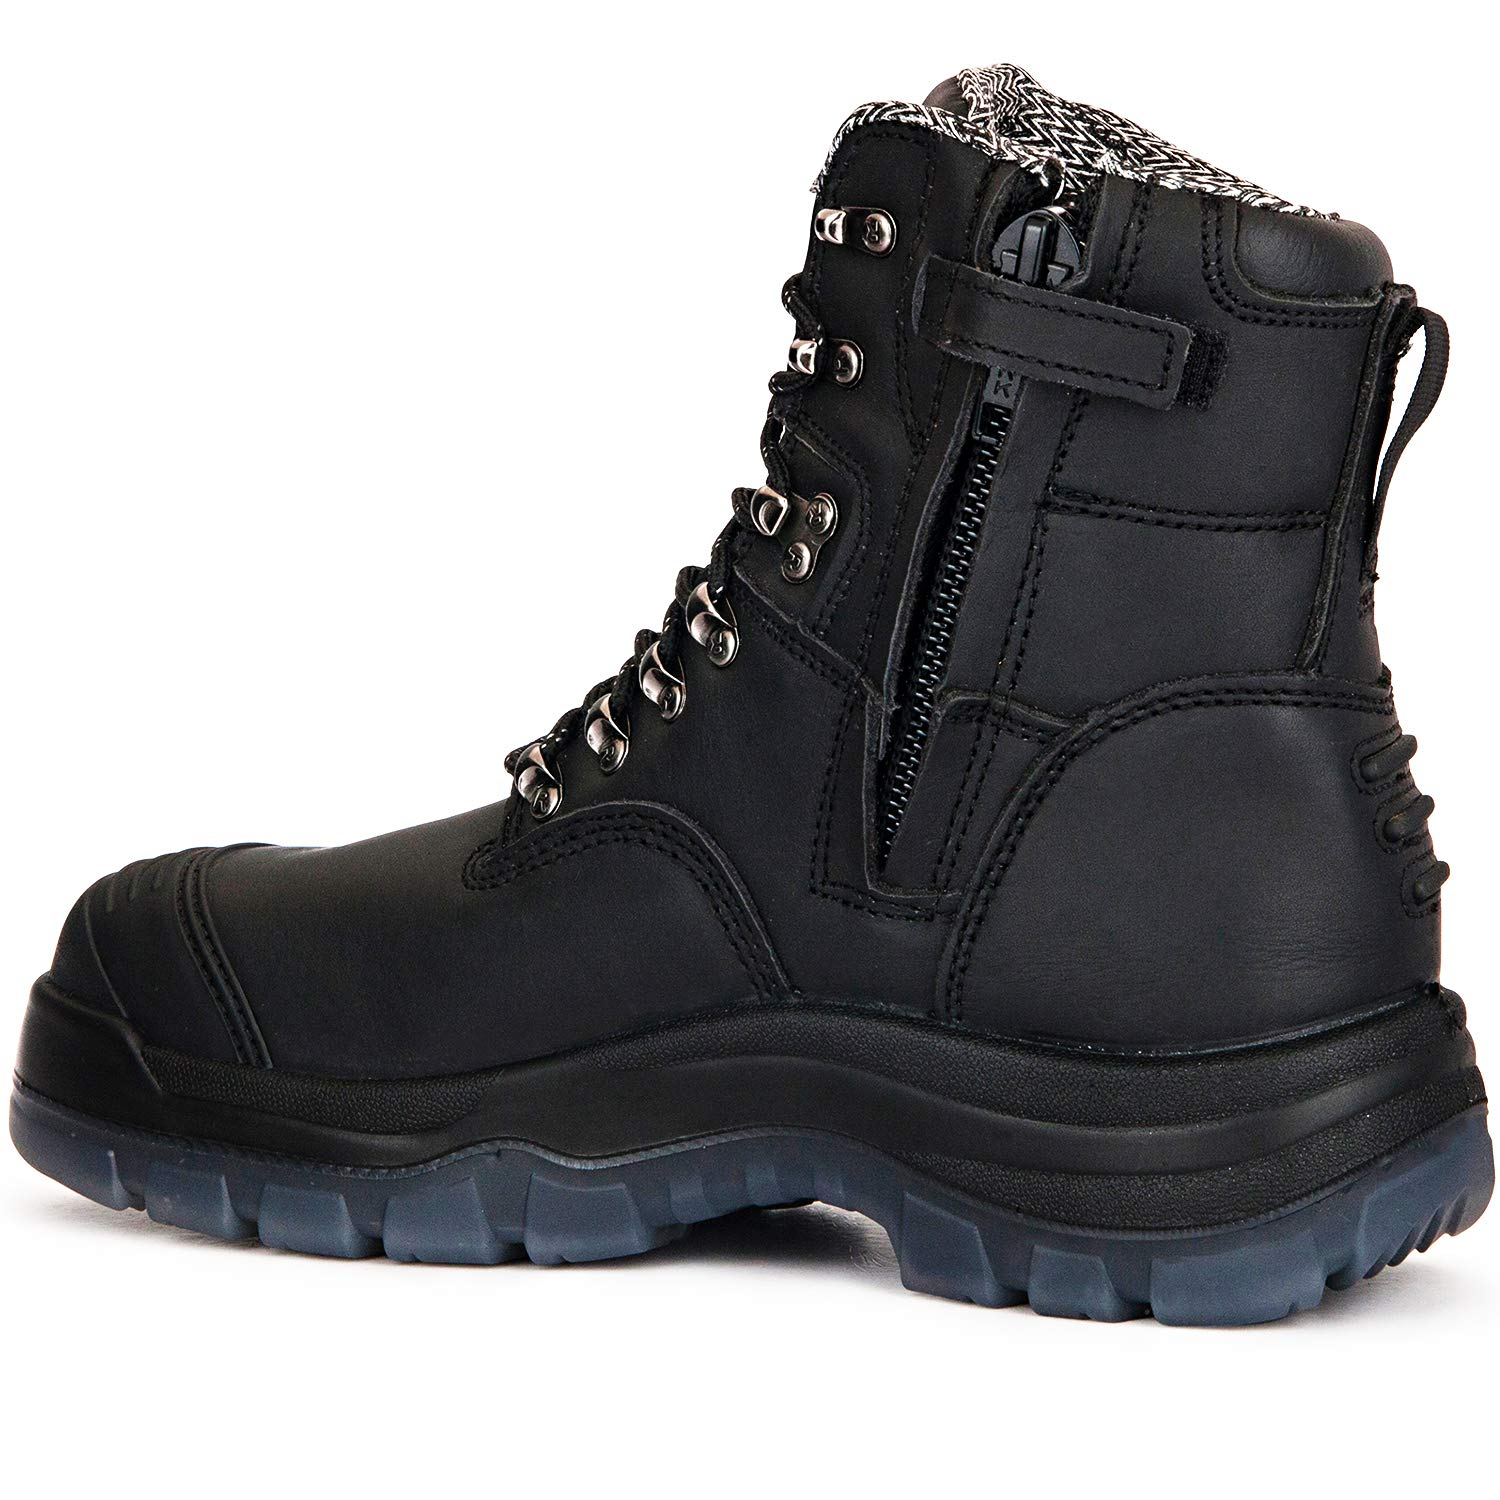 ROCKROOSTER Work Boots for Men,8 inch Steel Toe Slip On Leather Boots,Side Zipper,Static Control,Non-Slip,Breathable,Quick Dry,AK232Z AK245Z